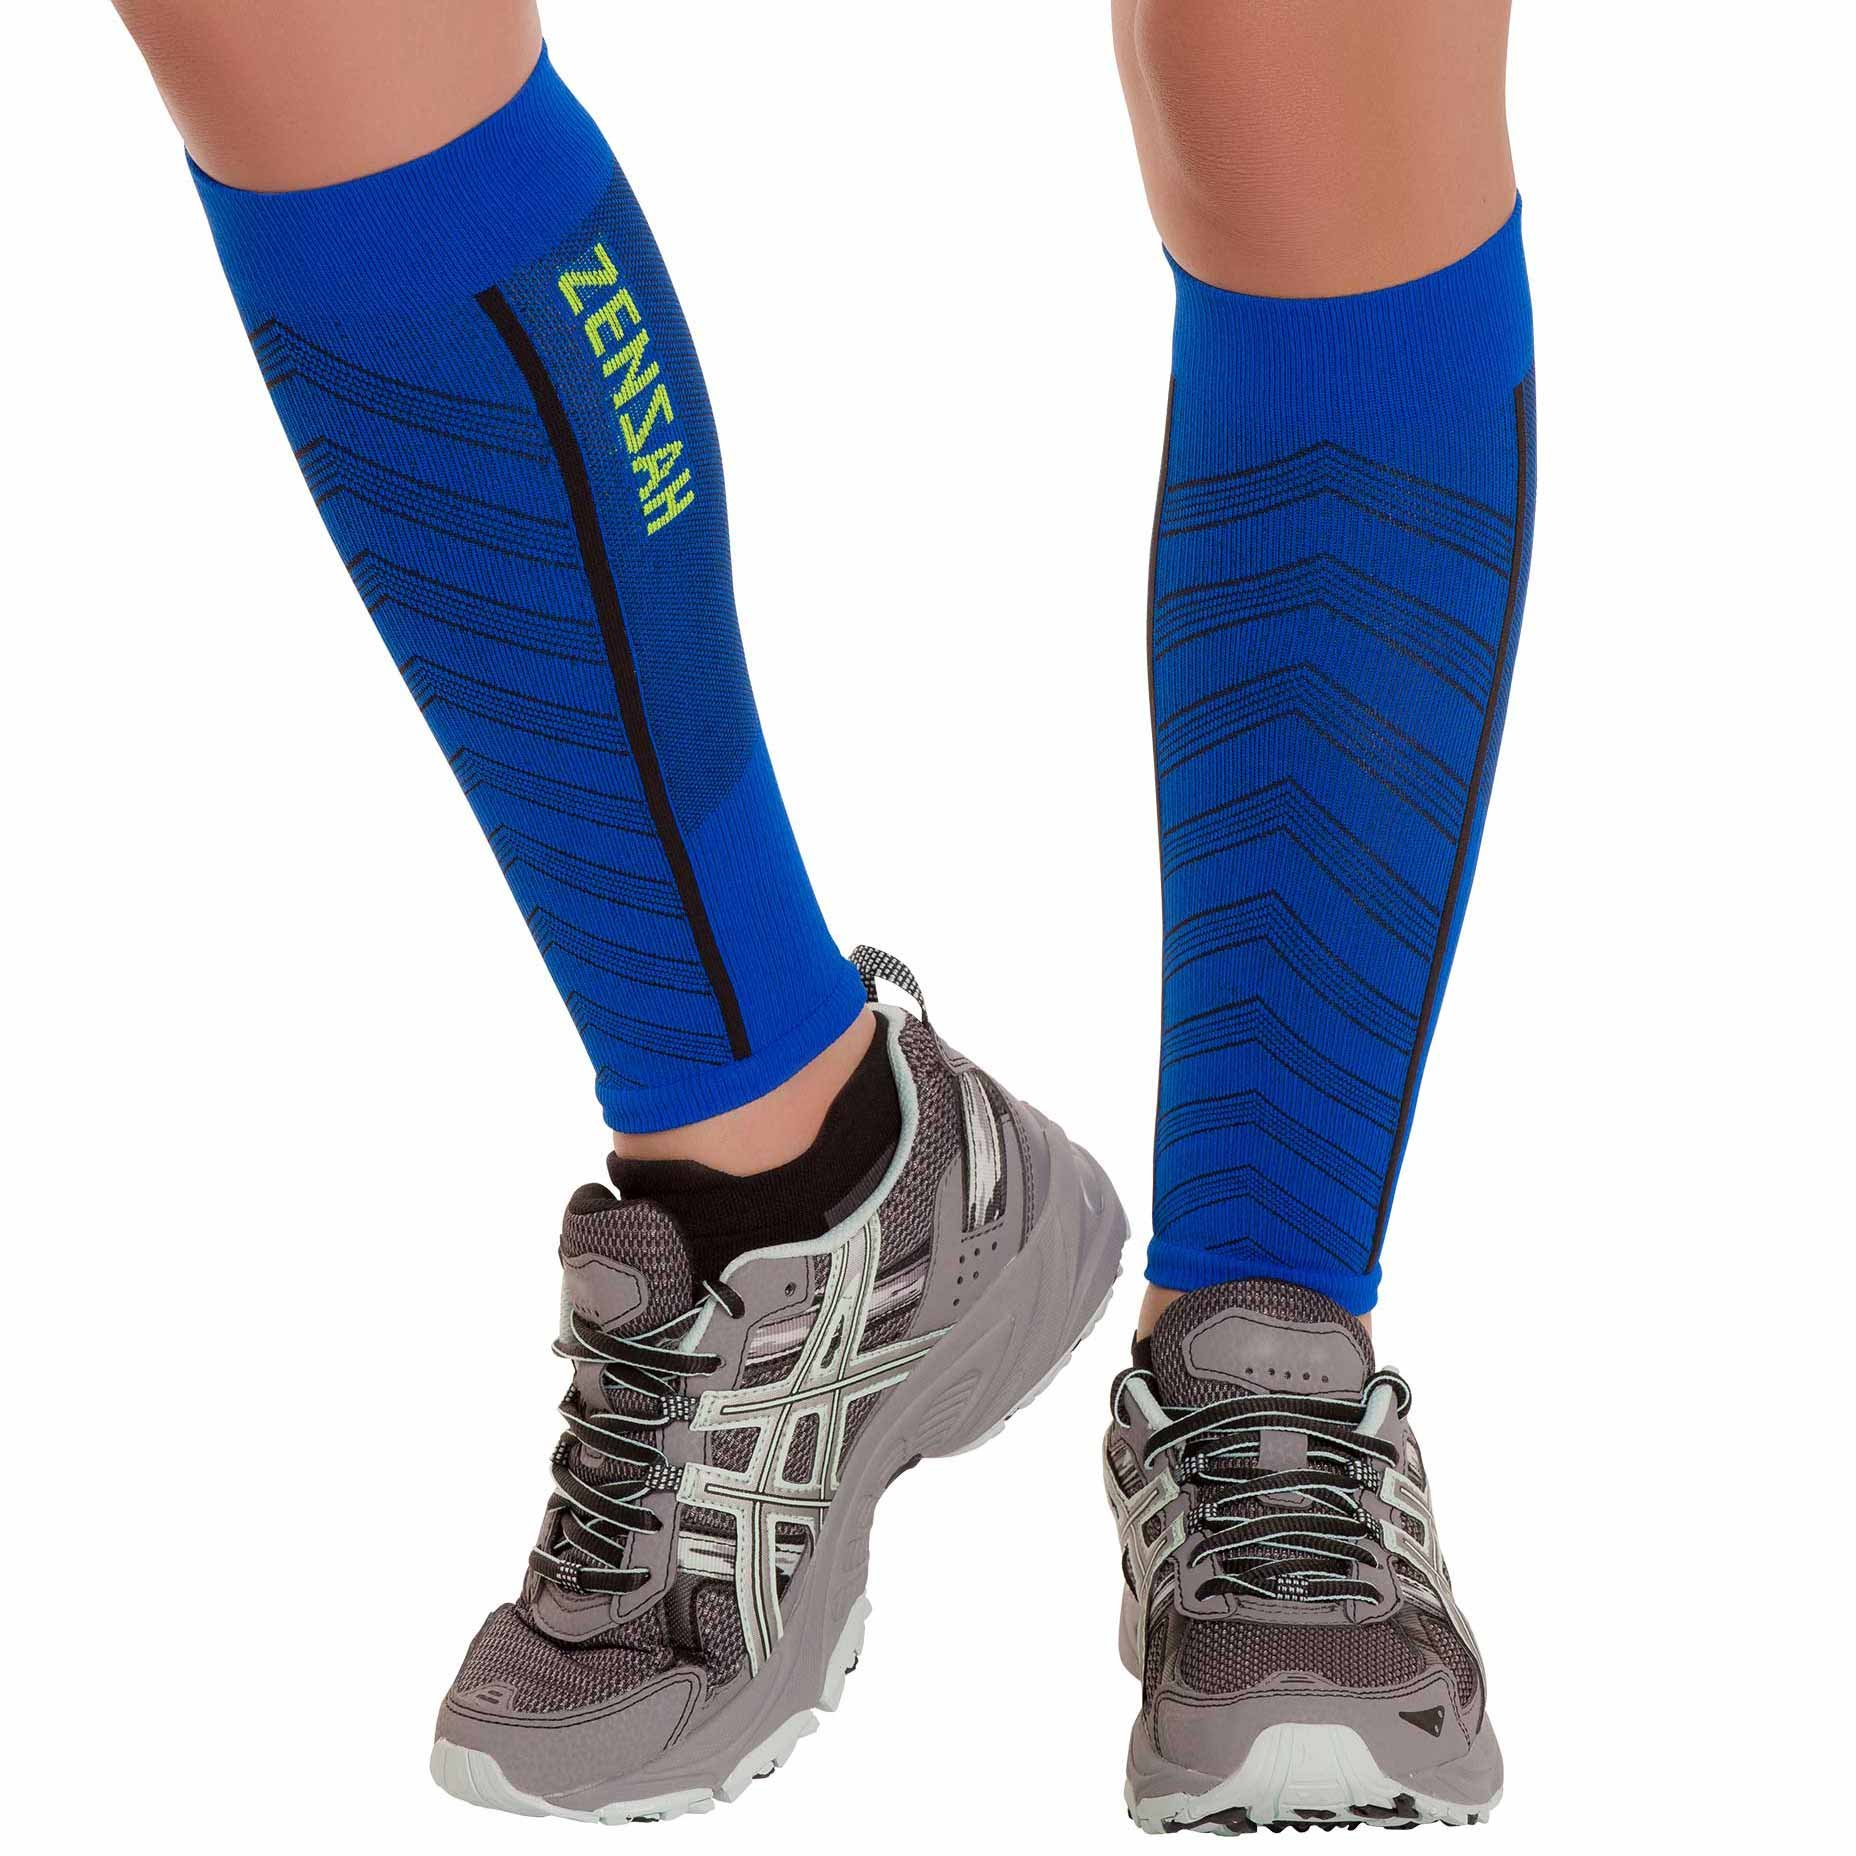 Zensah Featherweight Compression Ultra-Light Calf Sleeves, Sporty Blue, Large by Zensah